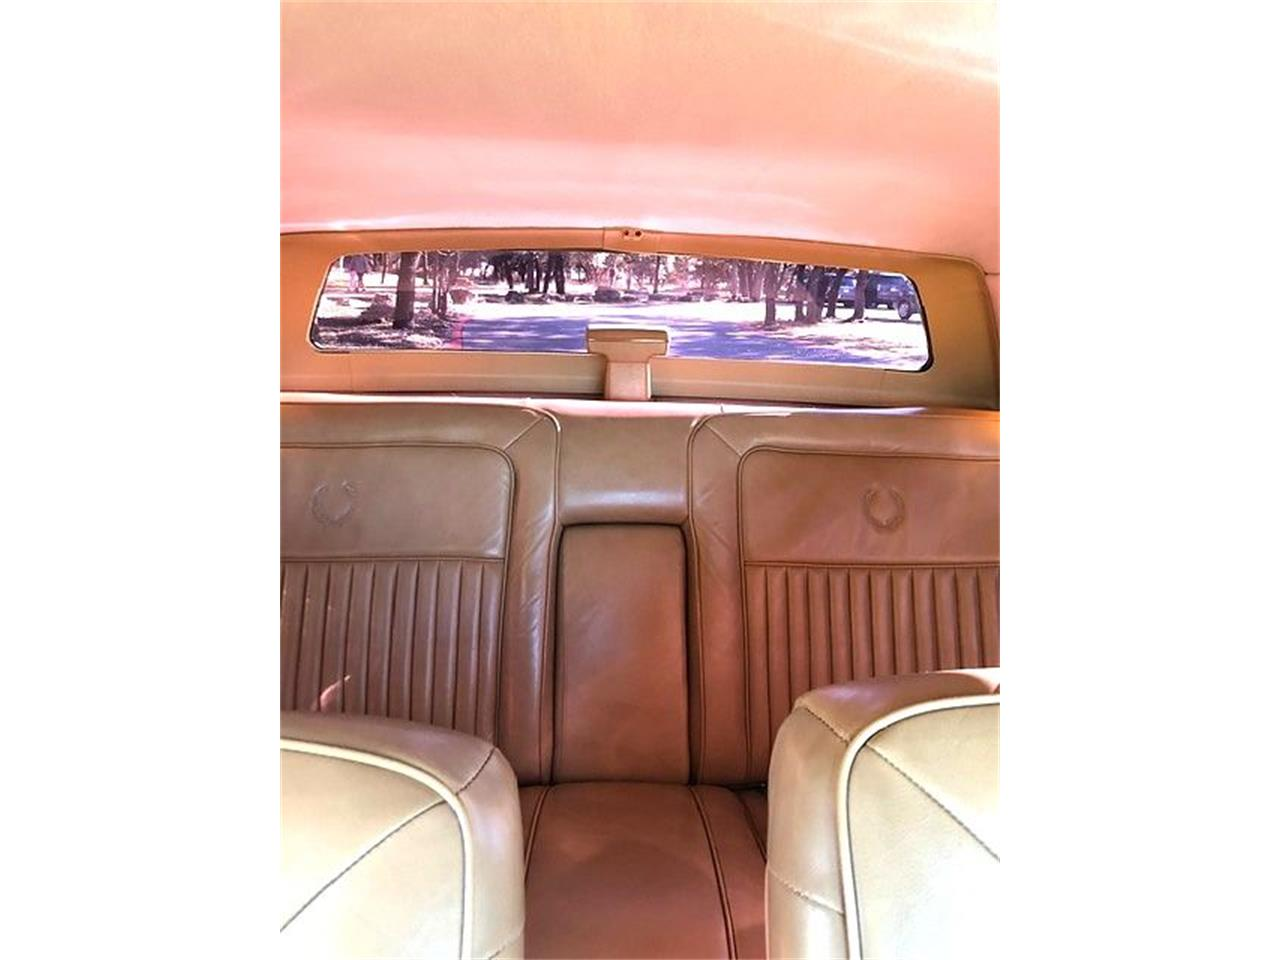 1987 Cadillac Fleetwood Brougham for sale in Stratford, NJ – photo 26